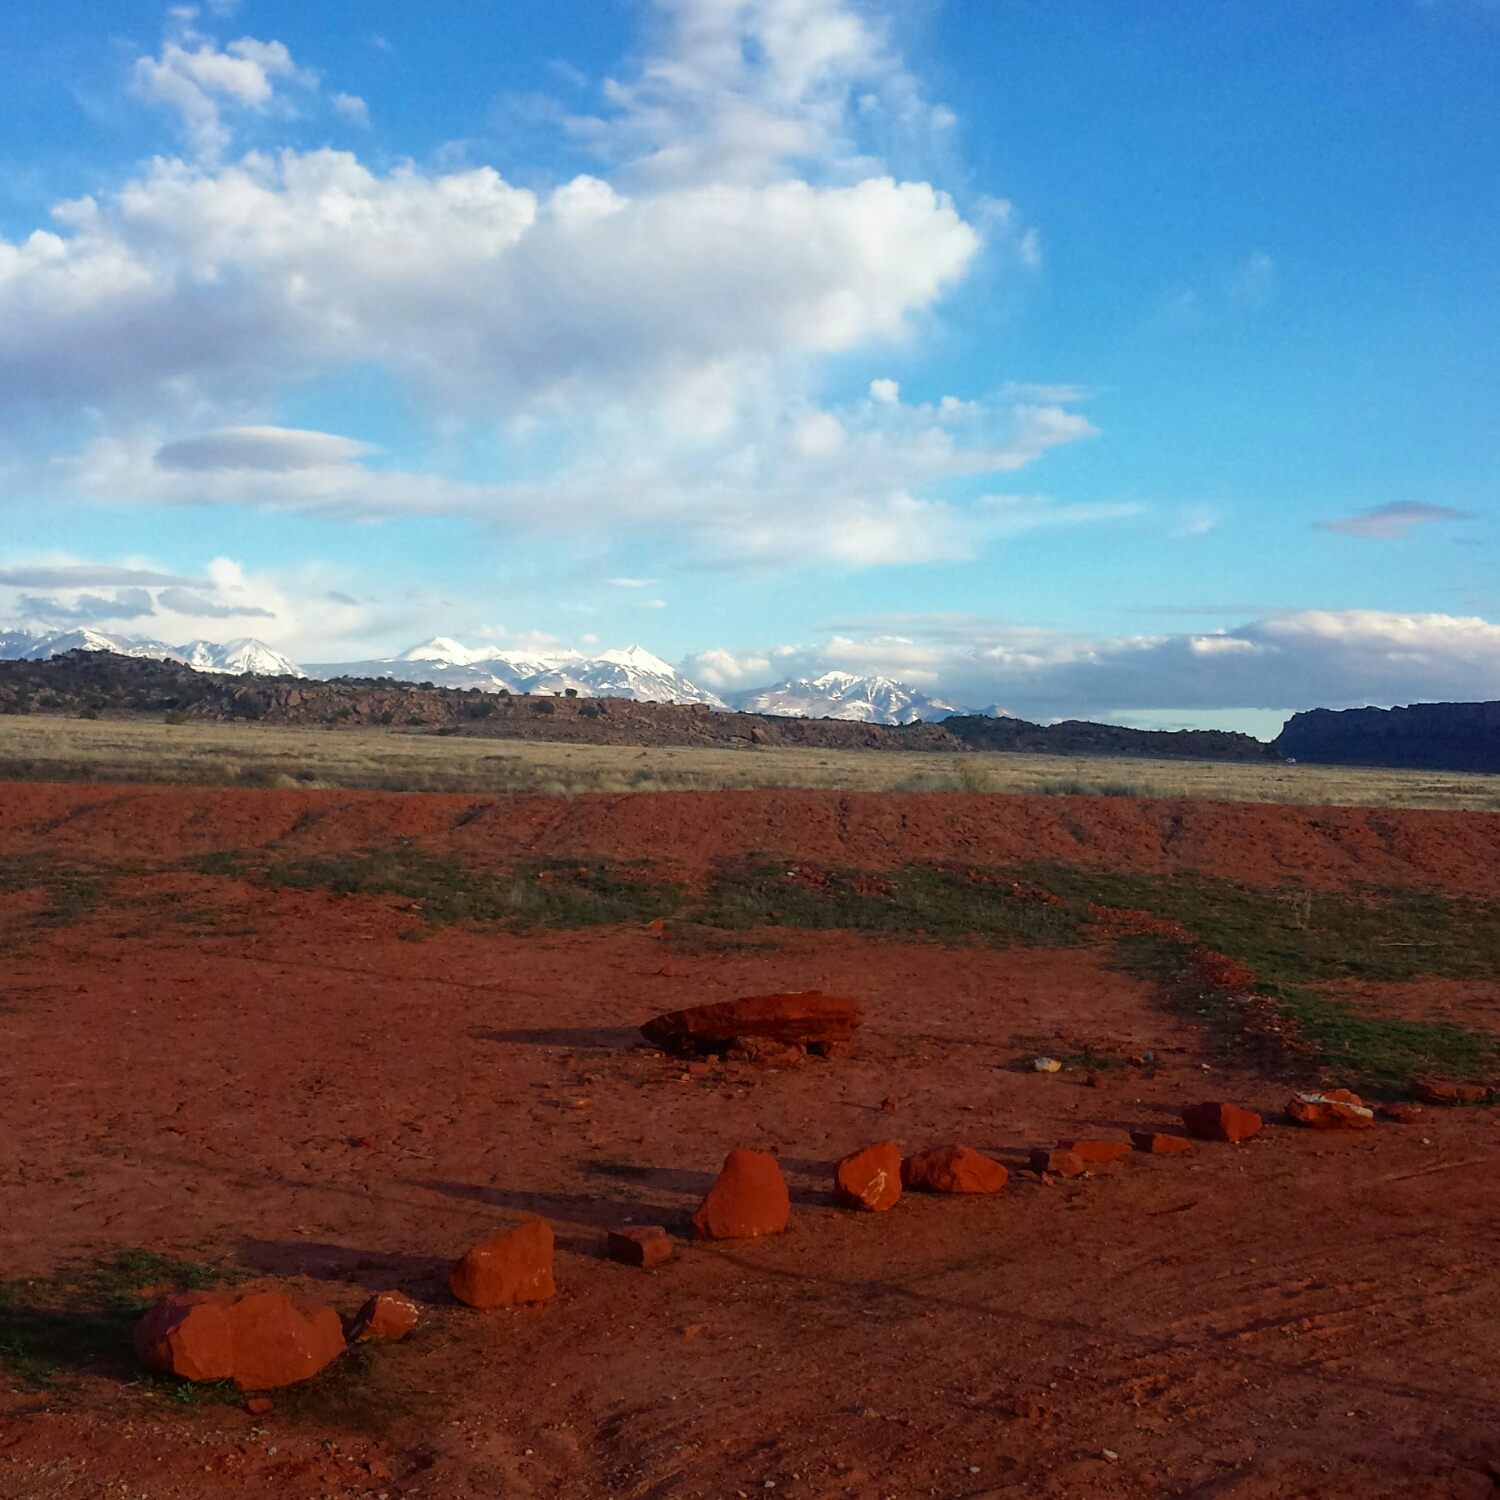 Moab, Utah showing off a little desert with a little snow. Photo: Brian